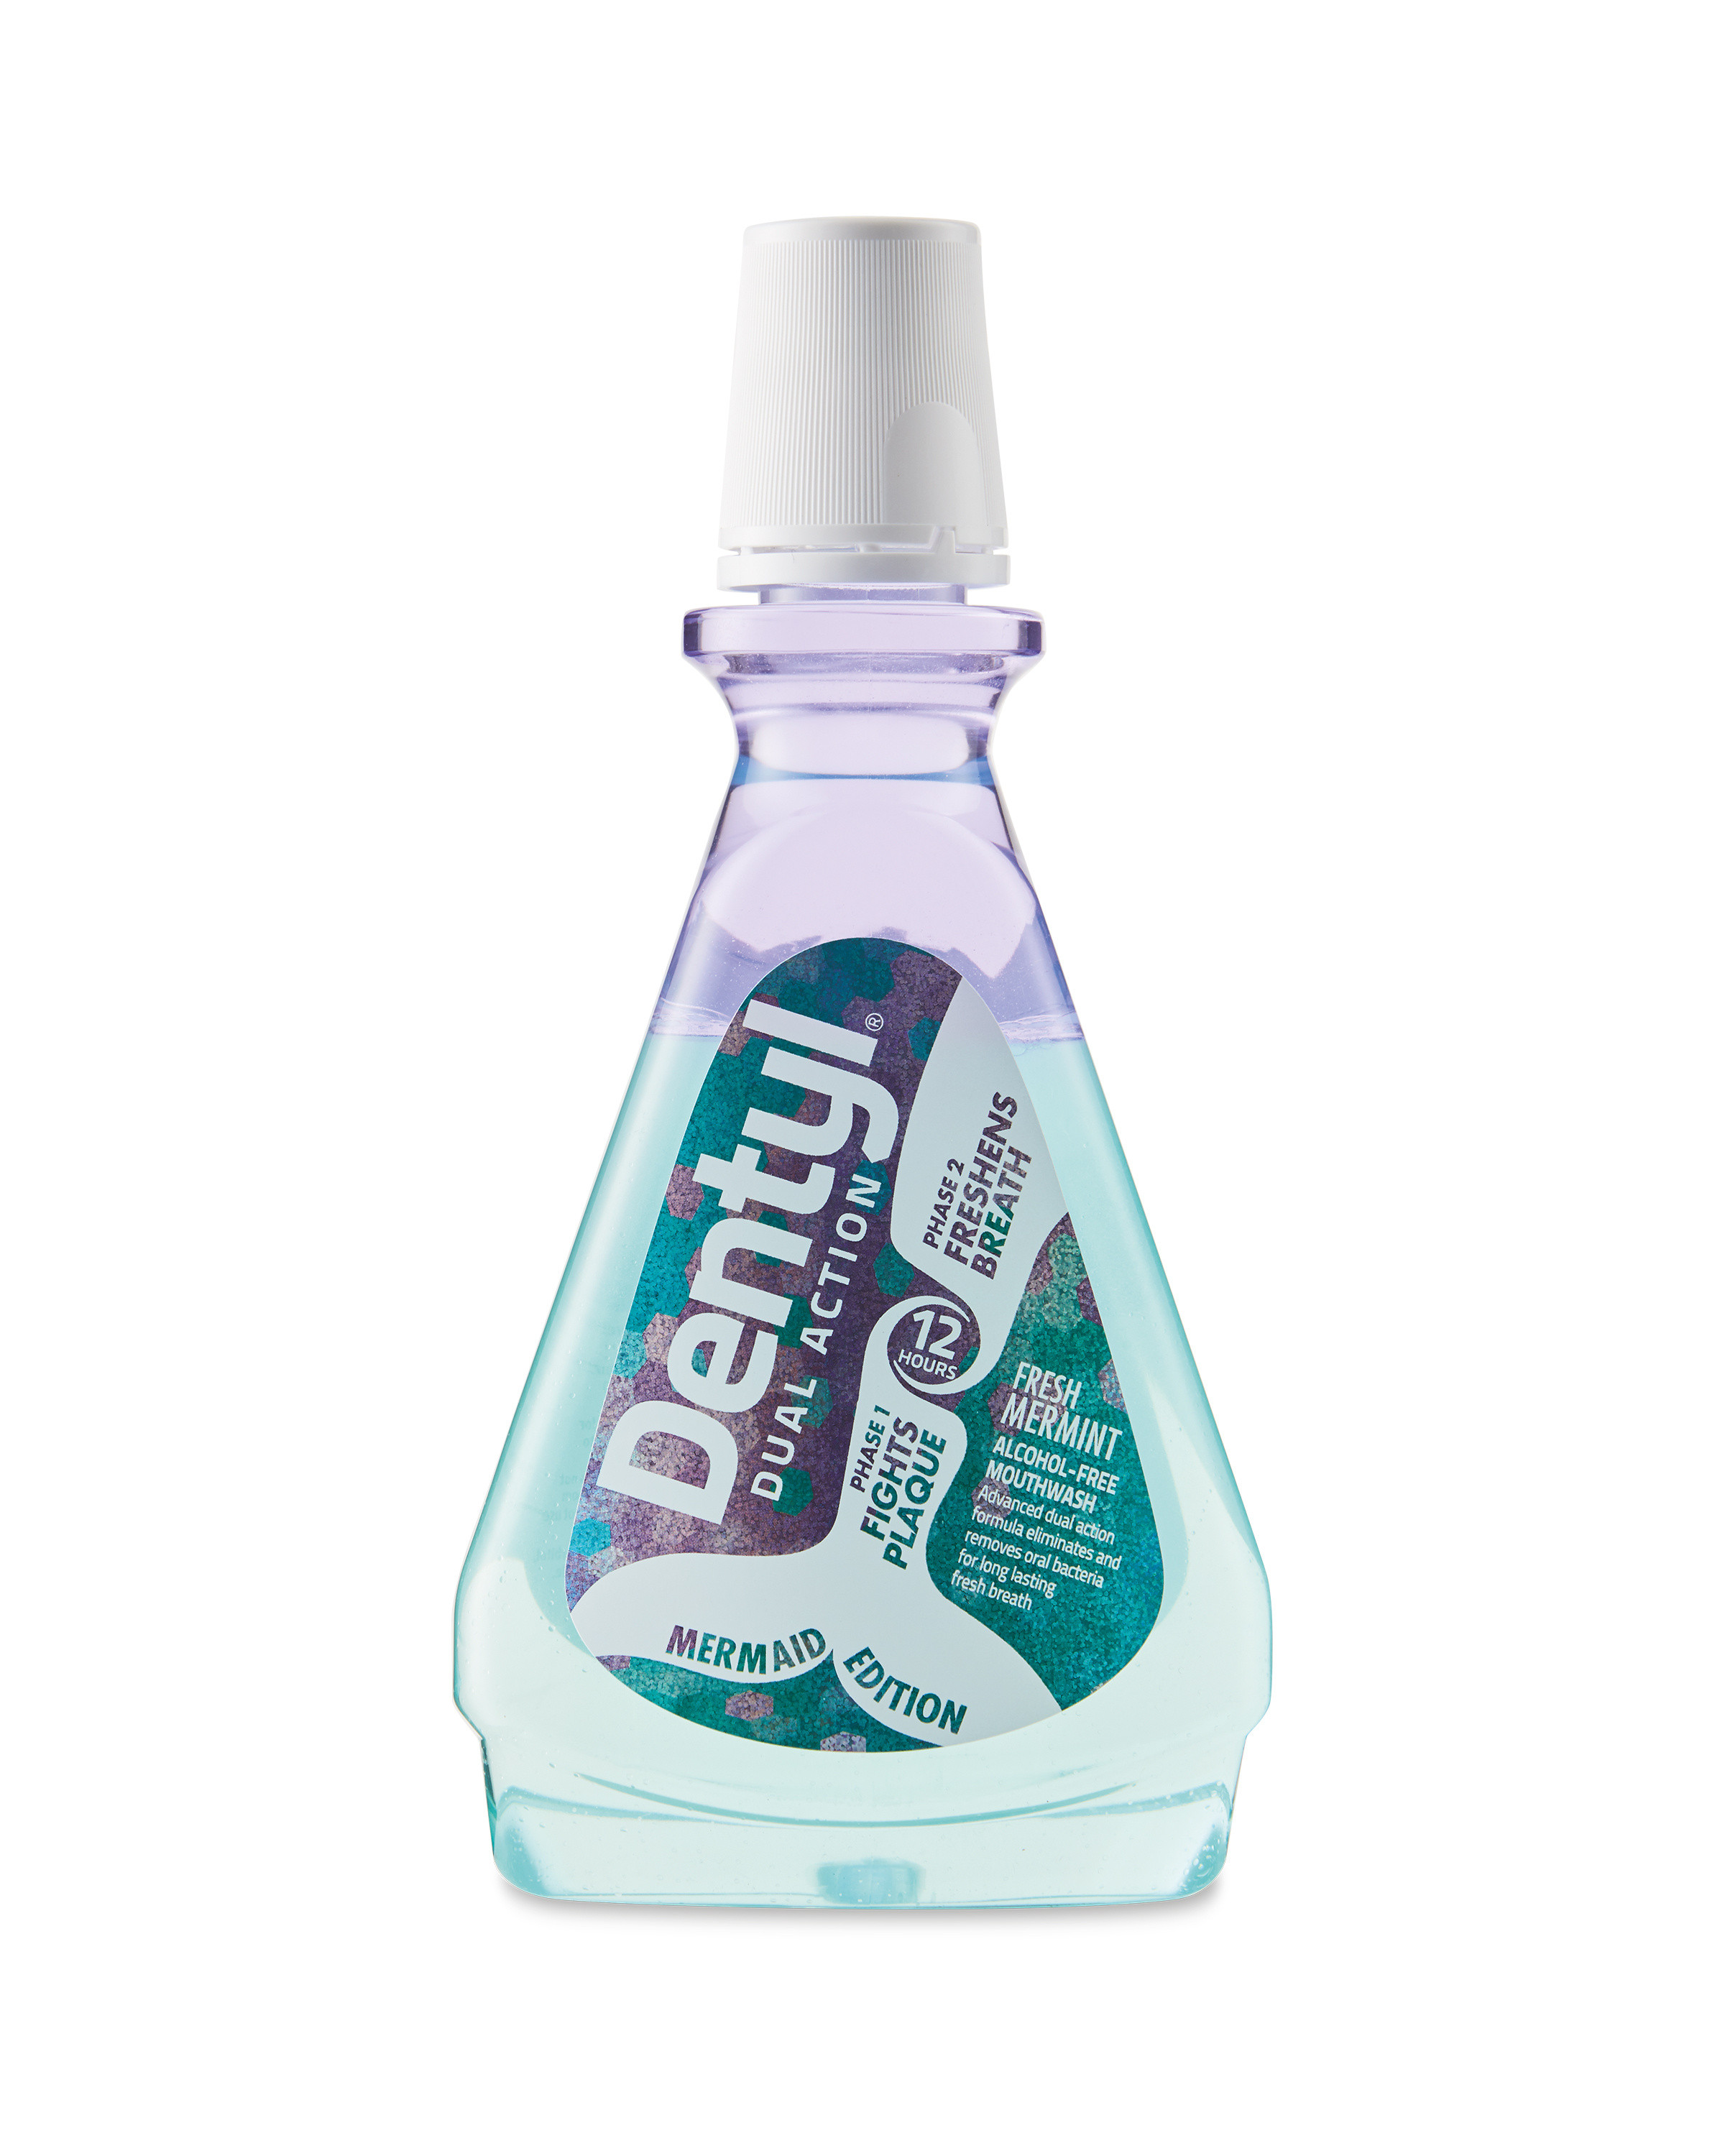 Dentyl Mermaid/Unicorn Mouthwashes